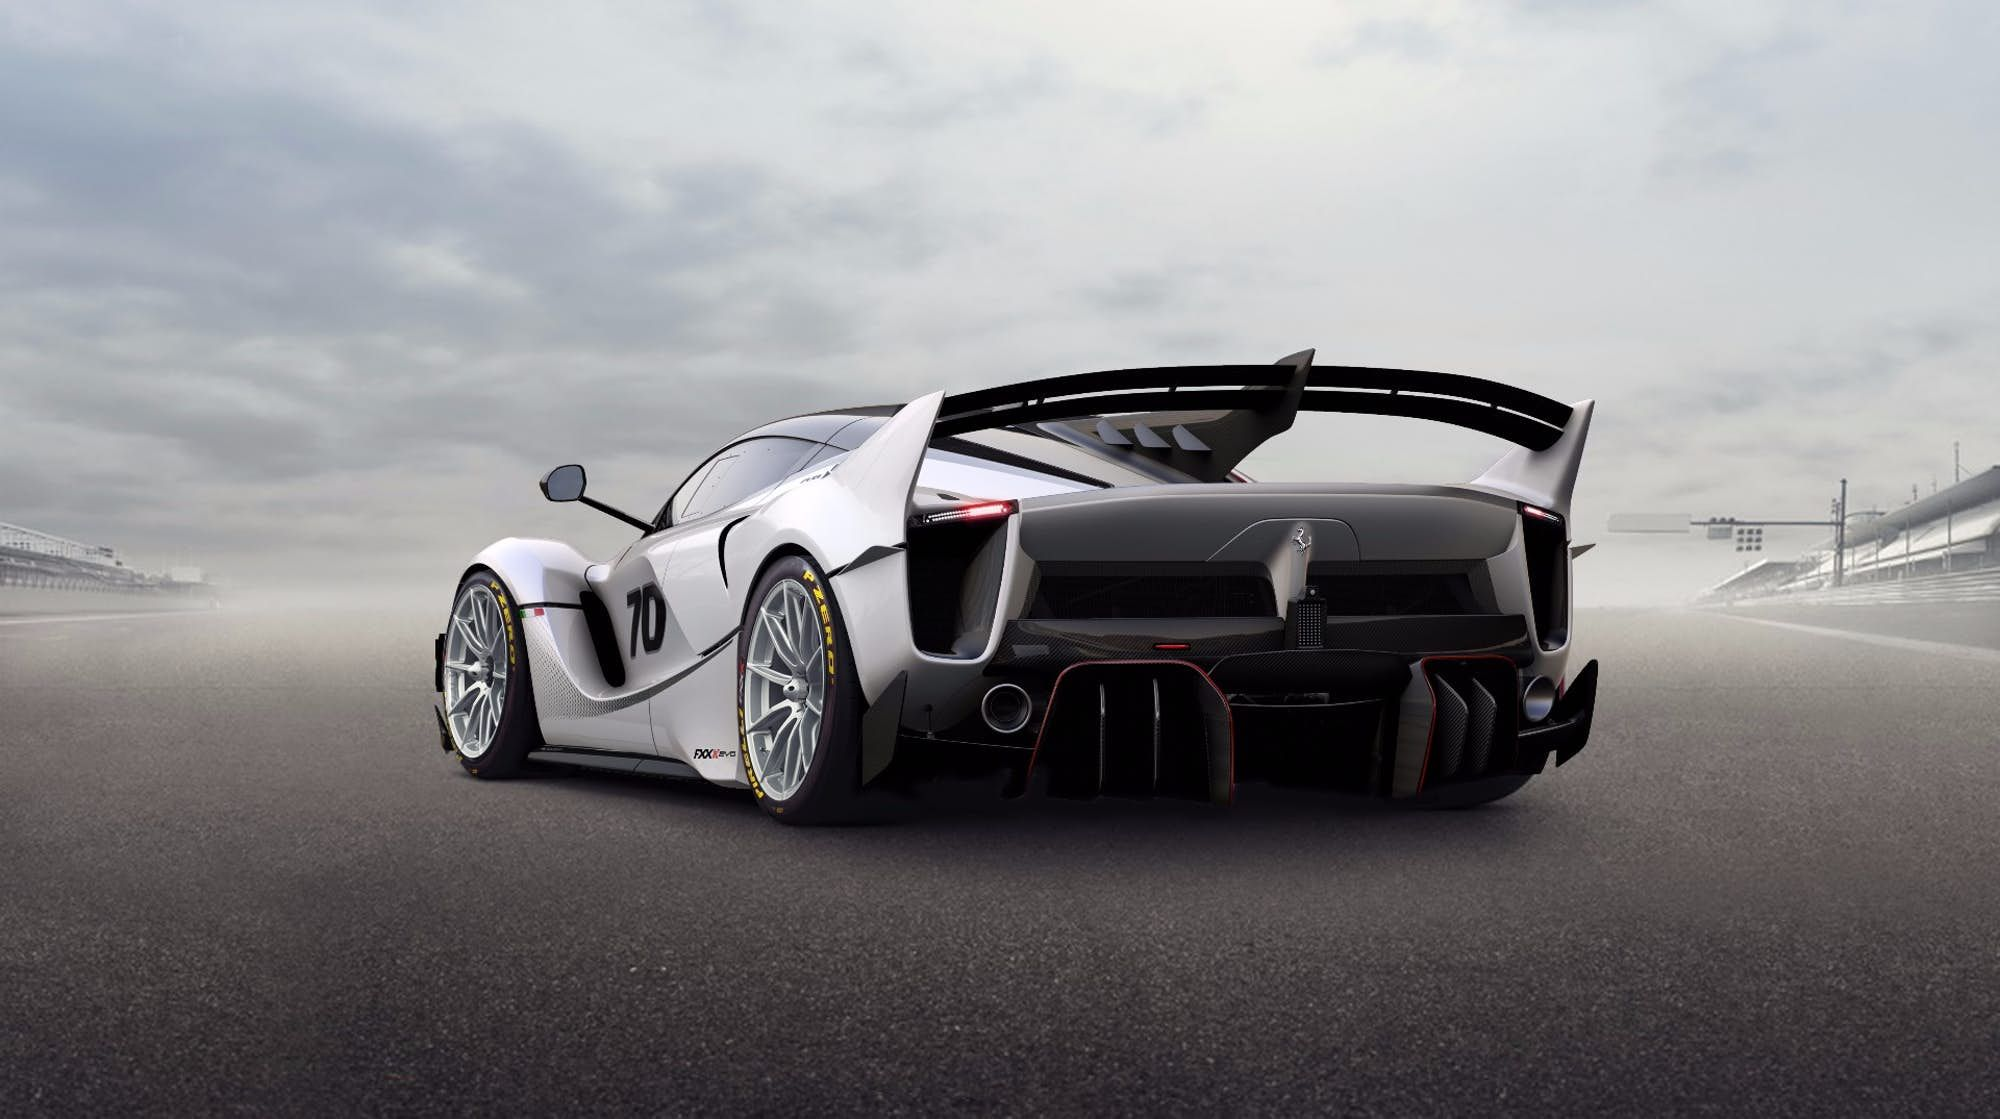 2018 Ferrari Fxx K Evo Revised Rear Bumpers Help Squeeze Extra Downforce Out Of The Diffusers Ferrari Fxx Ferrari Ferrari Fxxk Ferrari laferrari fxx k evo rear